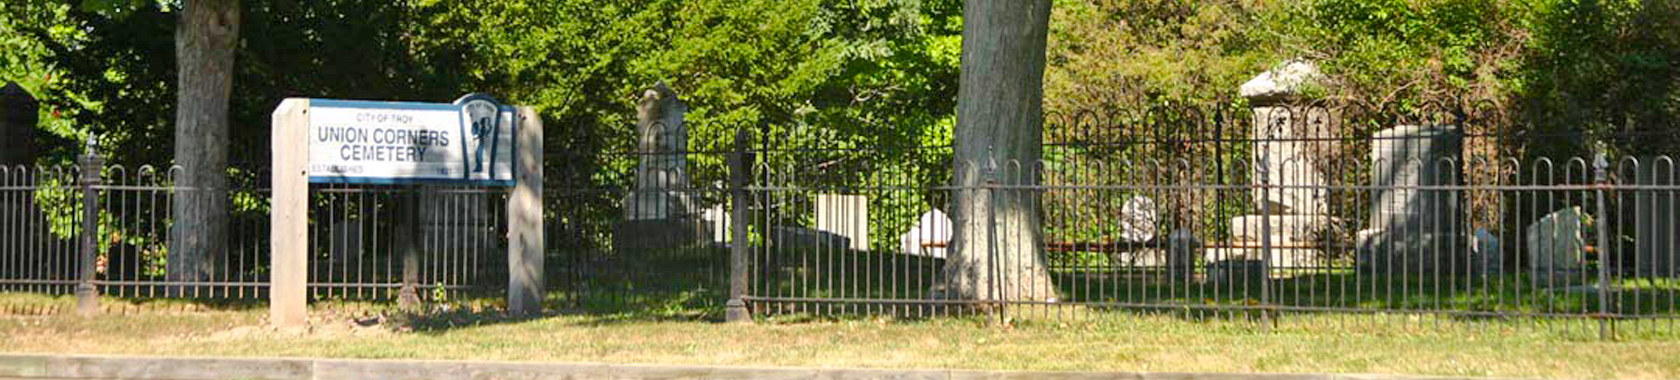 Union Corners Cemetery Walk